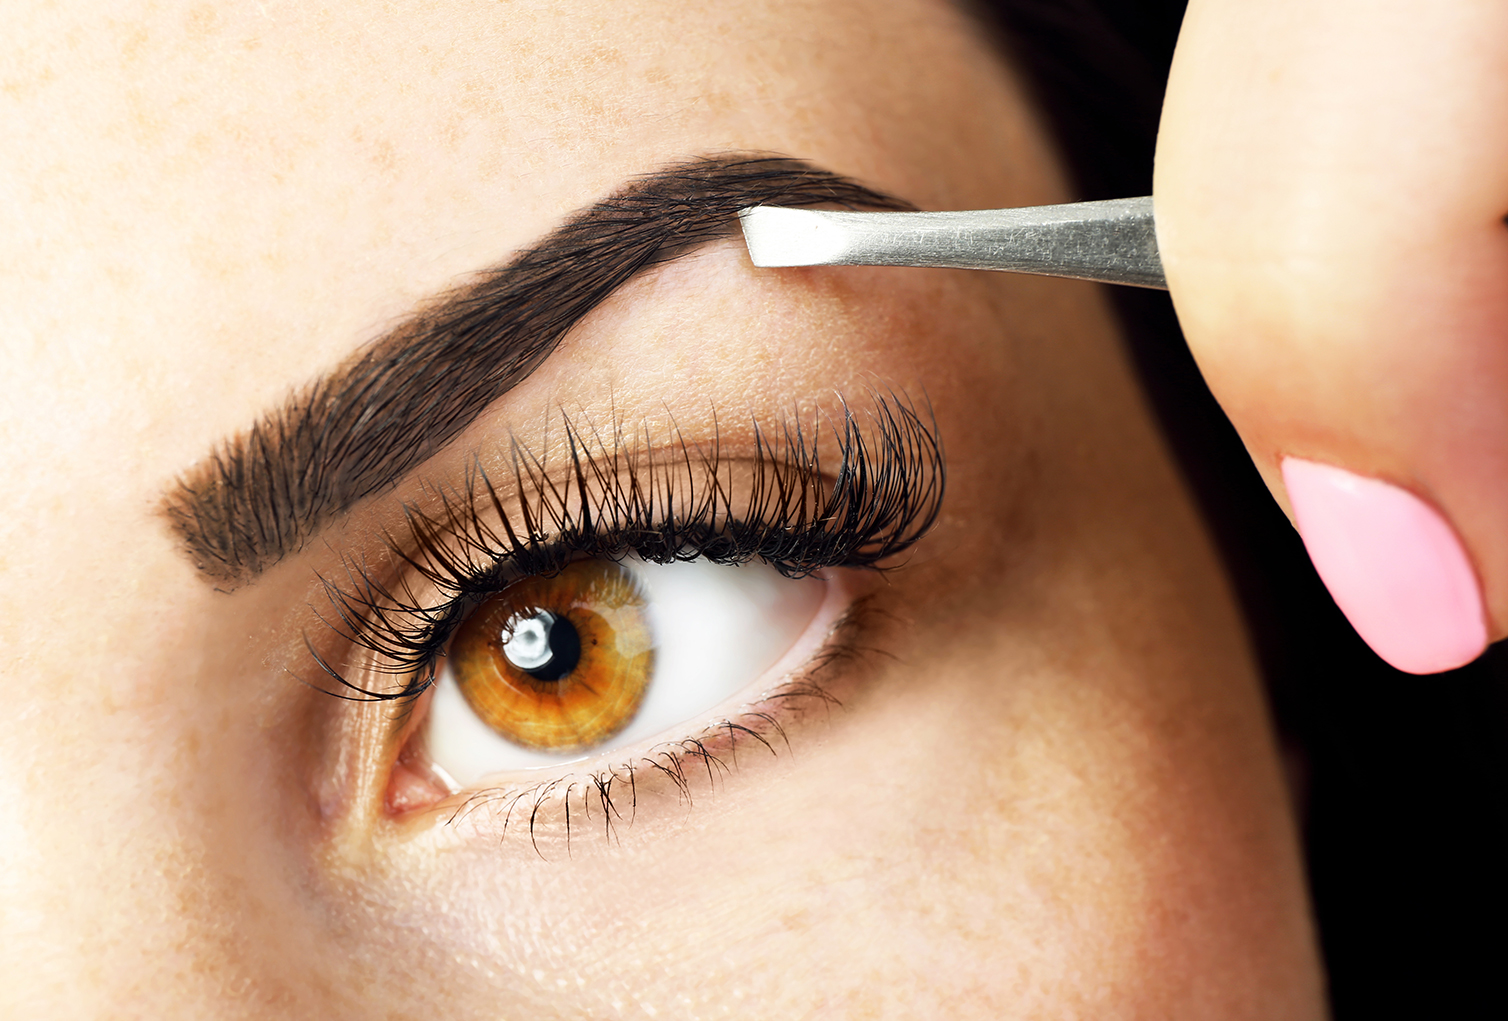 Standard Eyebrow shaping or cleanup